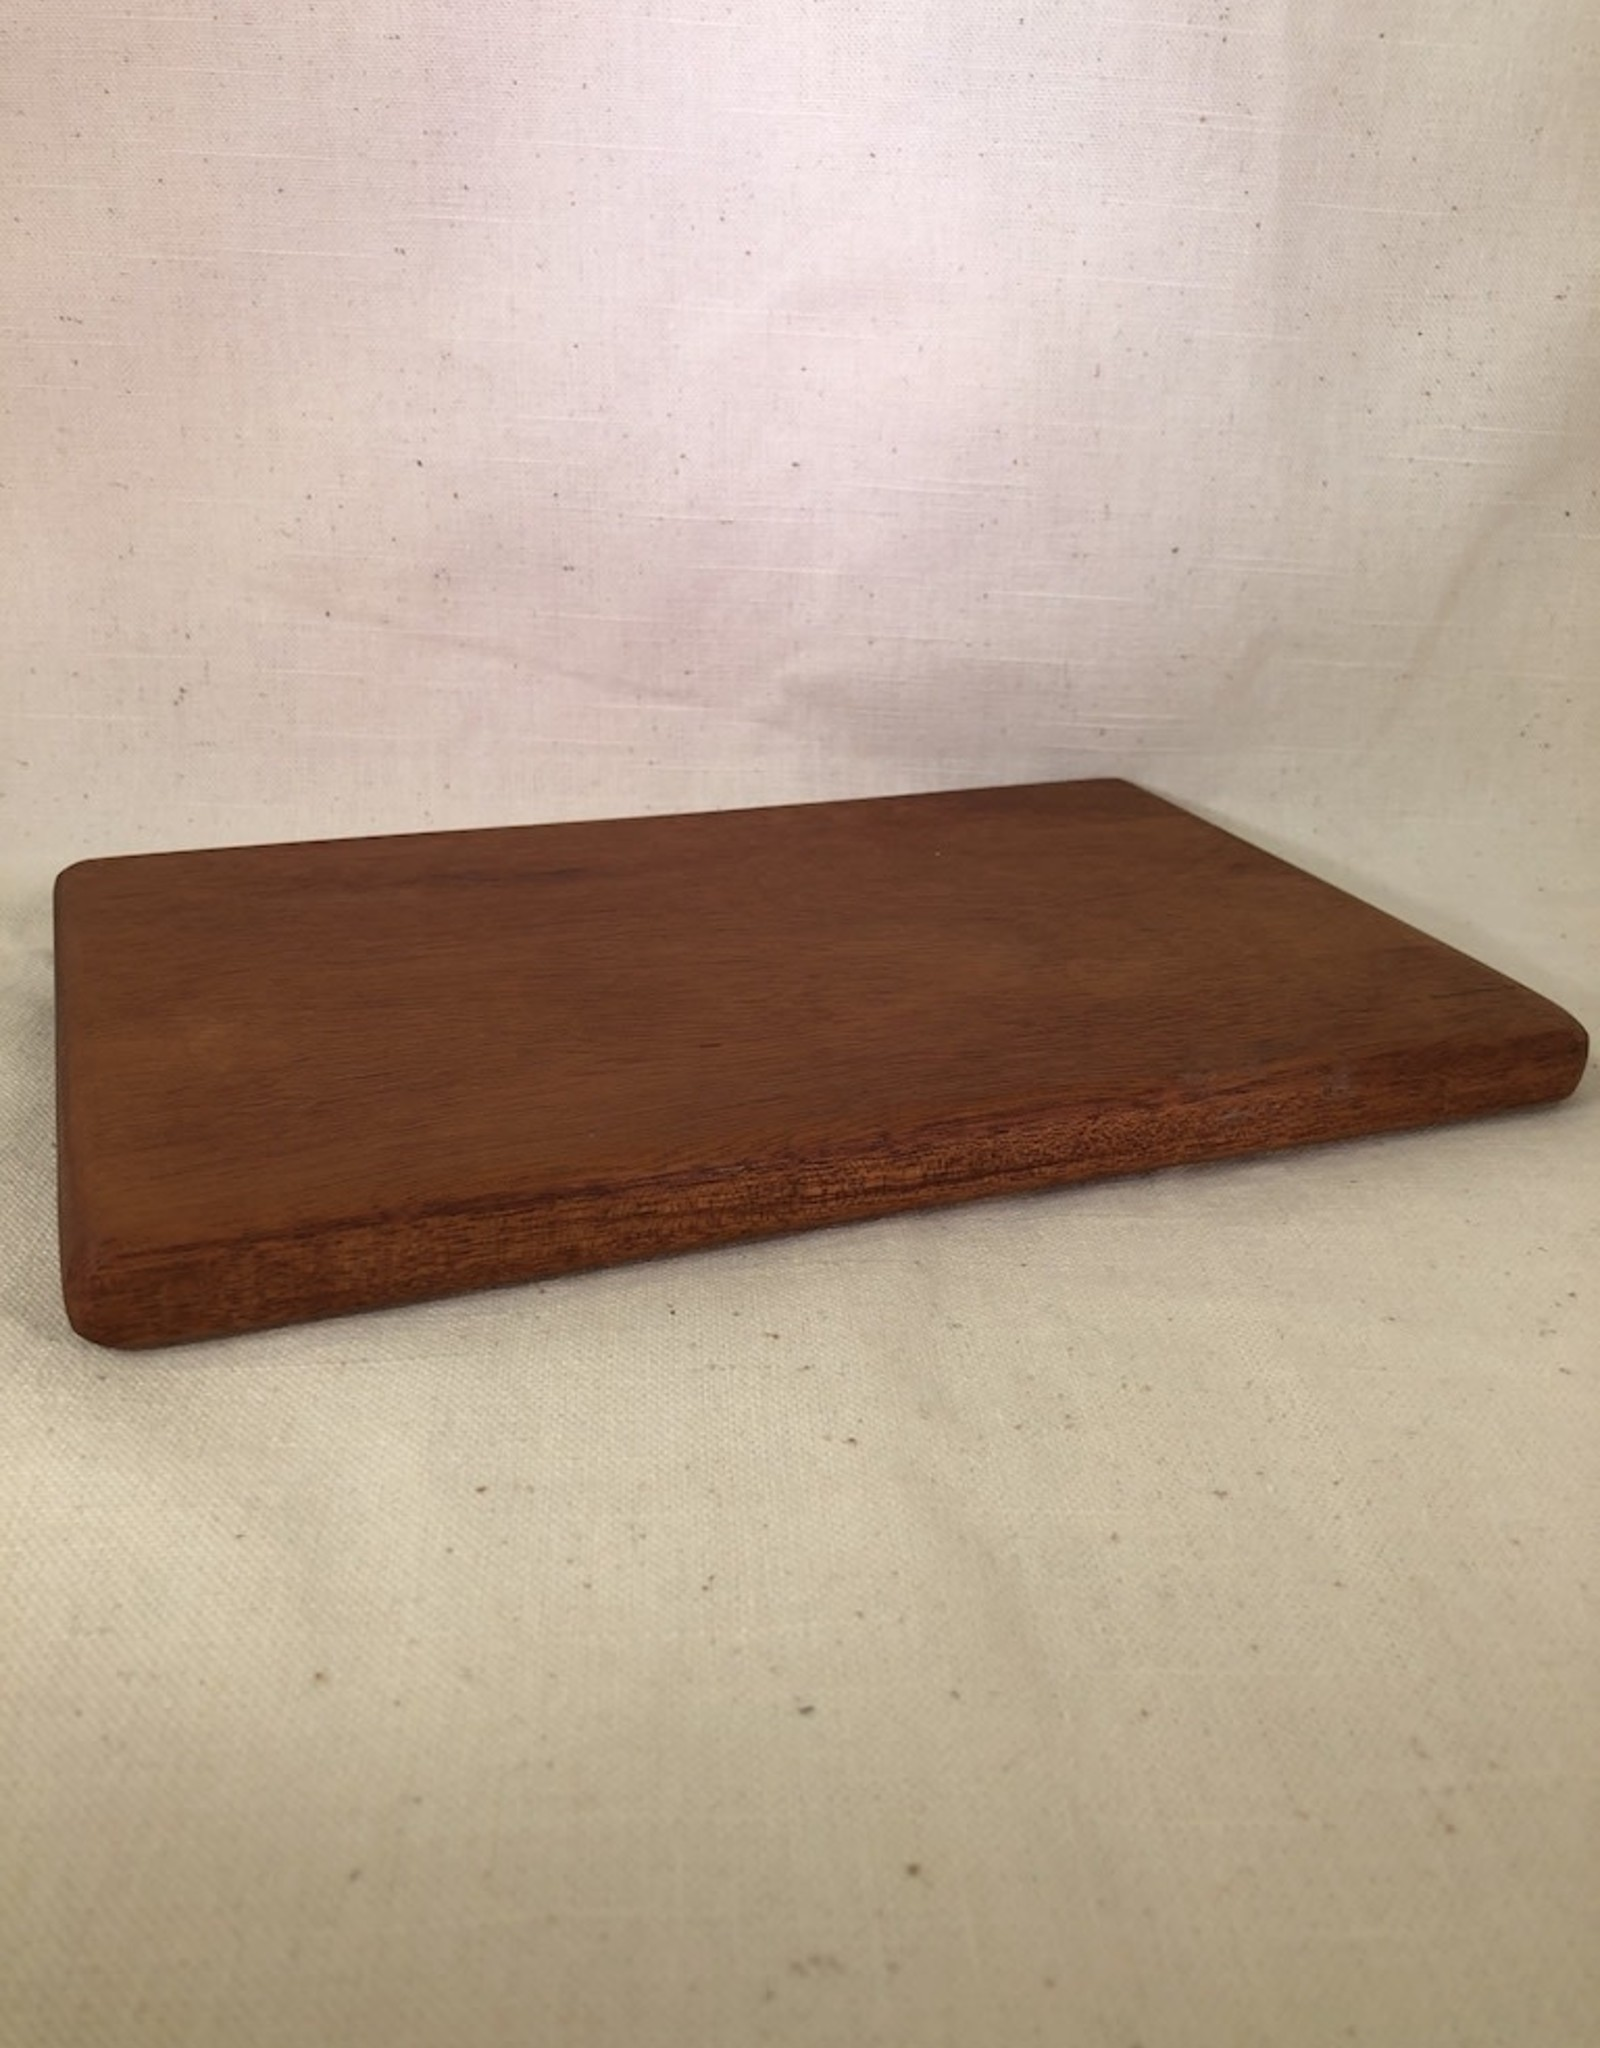 Small Mahogany Cutting Board